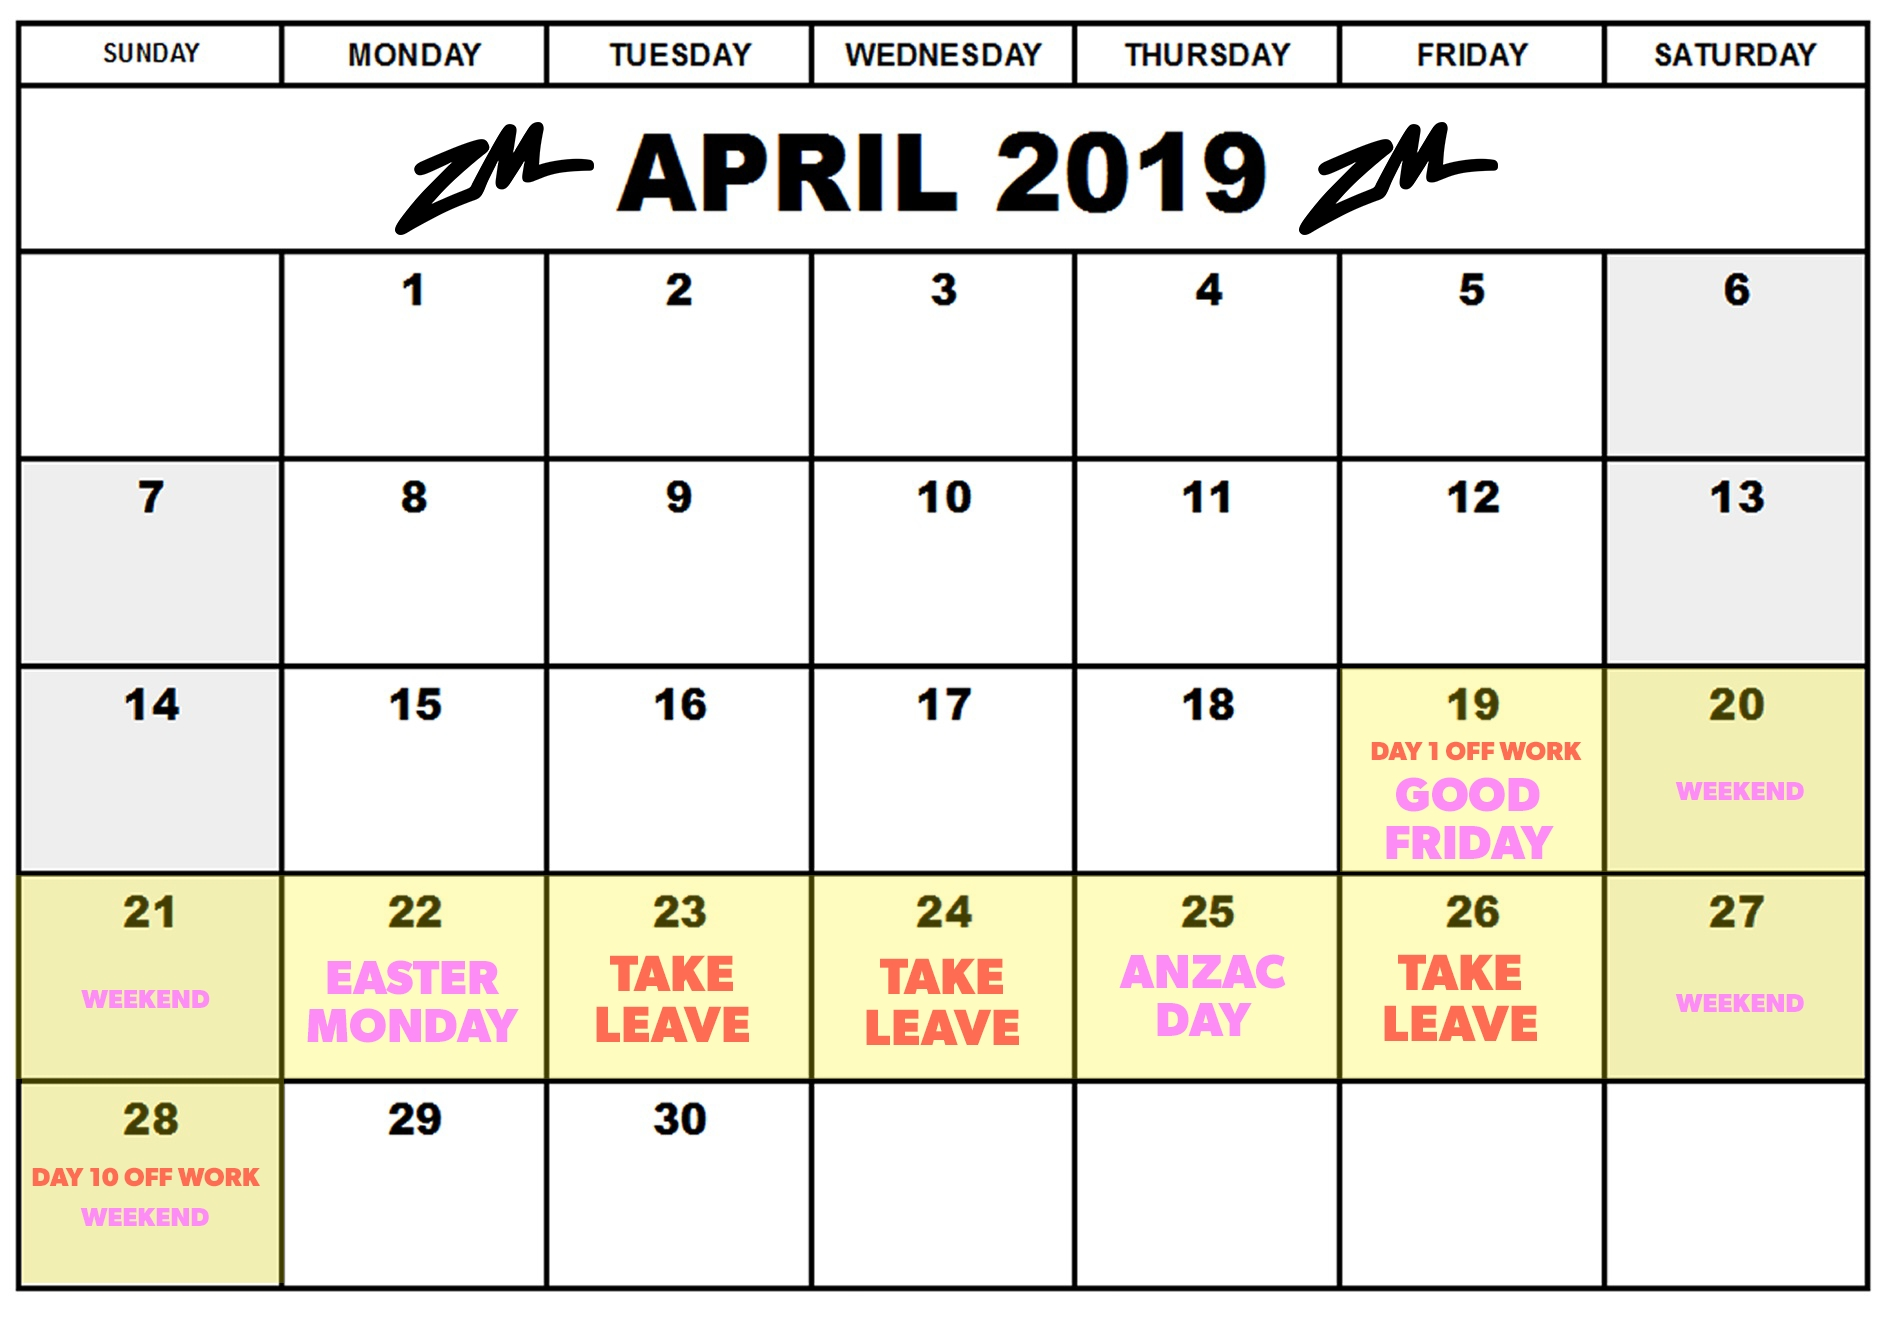 How You Can Take 10 Days Off This Month Only Use 3 Days Of Leave